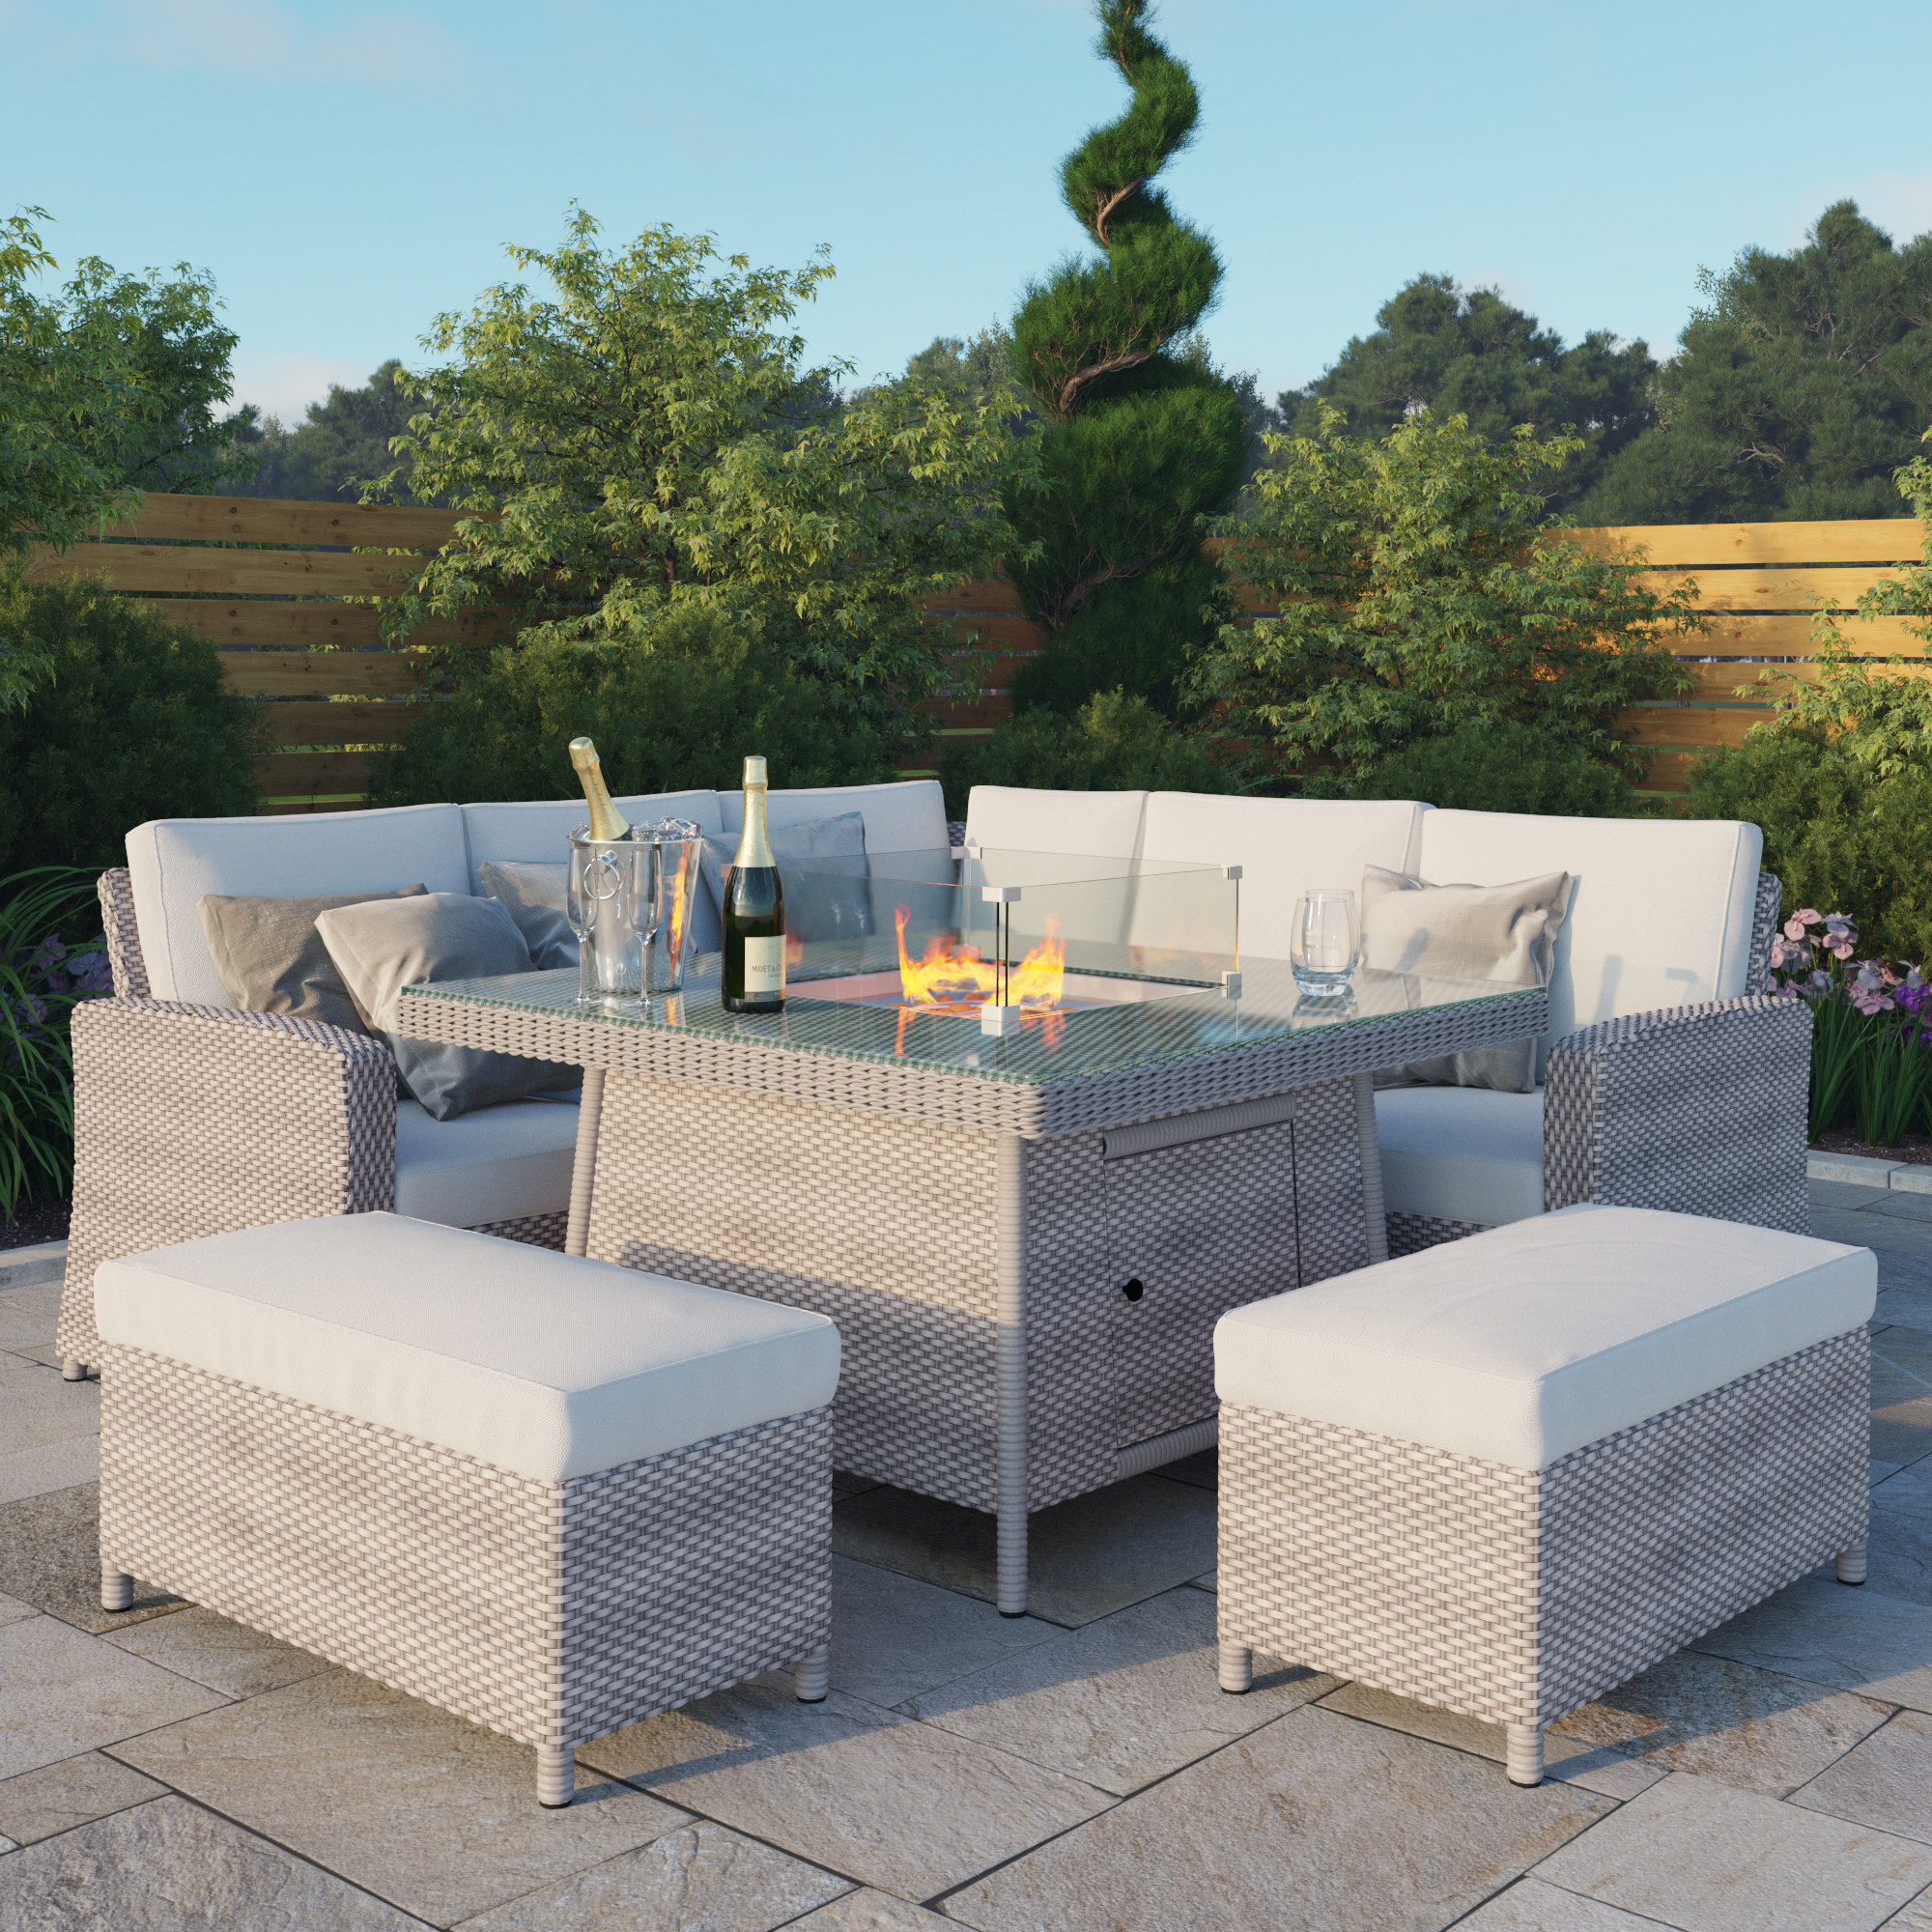 BillyOh Capri Rattan Garden Corner Sofa Set with Firepit Table - L-Shaped Rattan With 2 Benches and Firepit